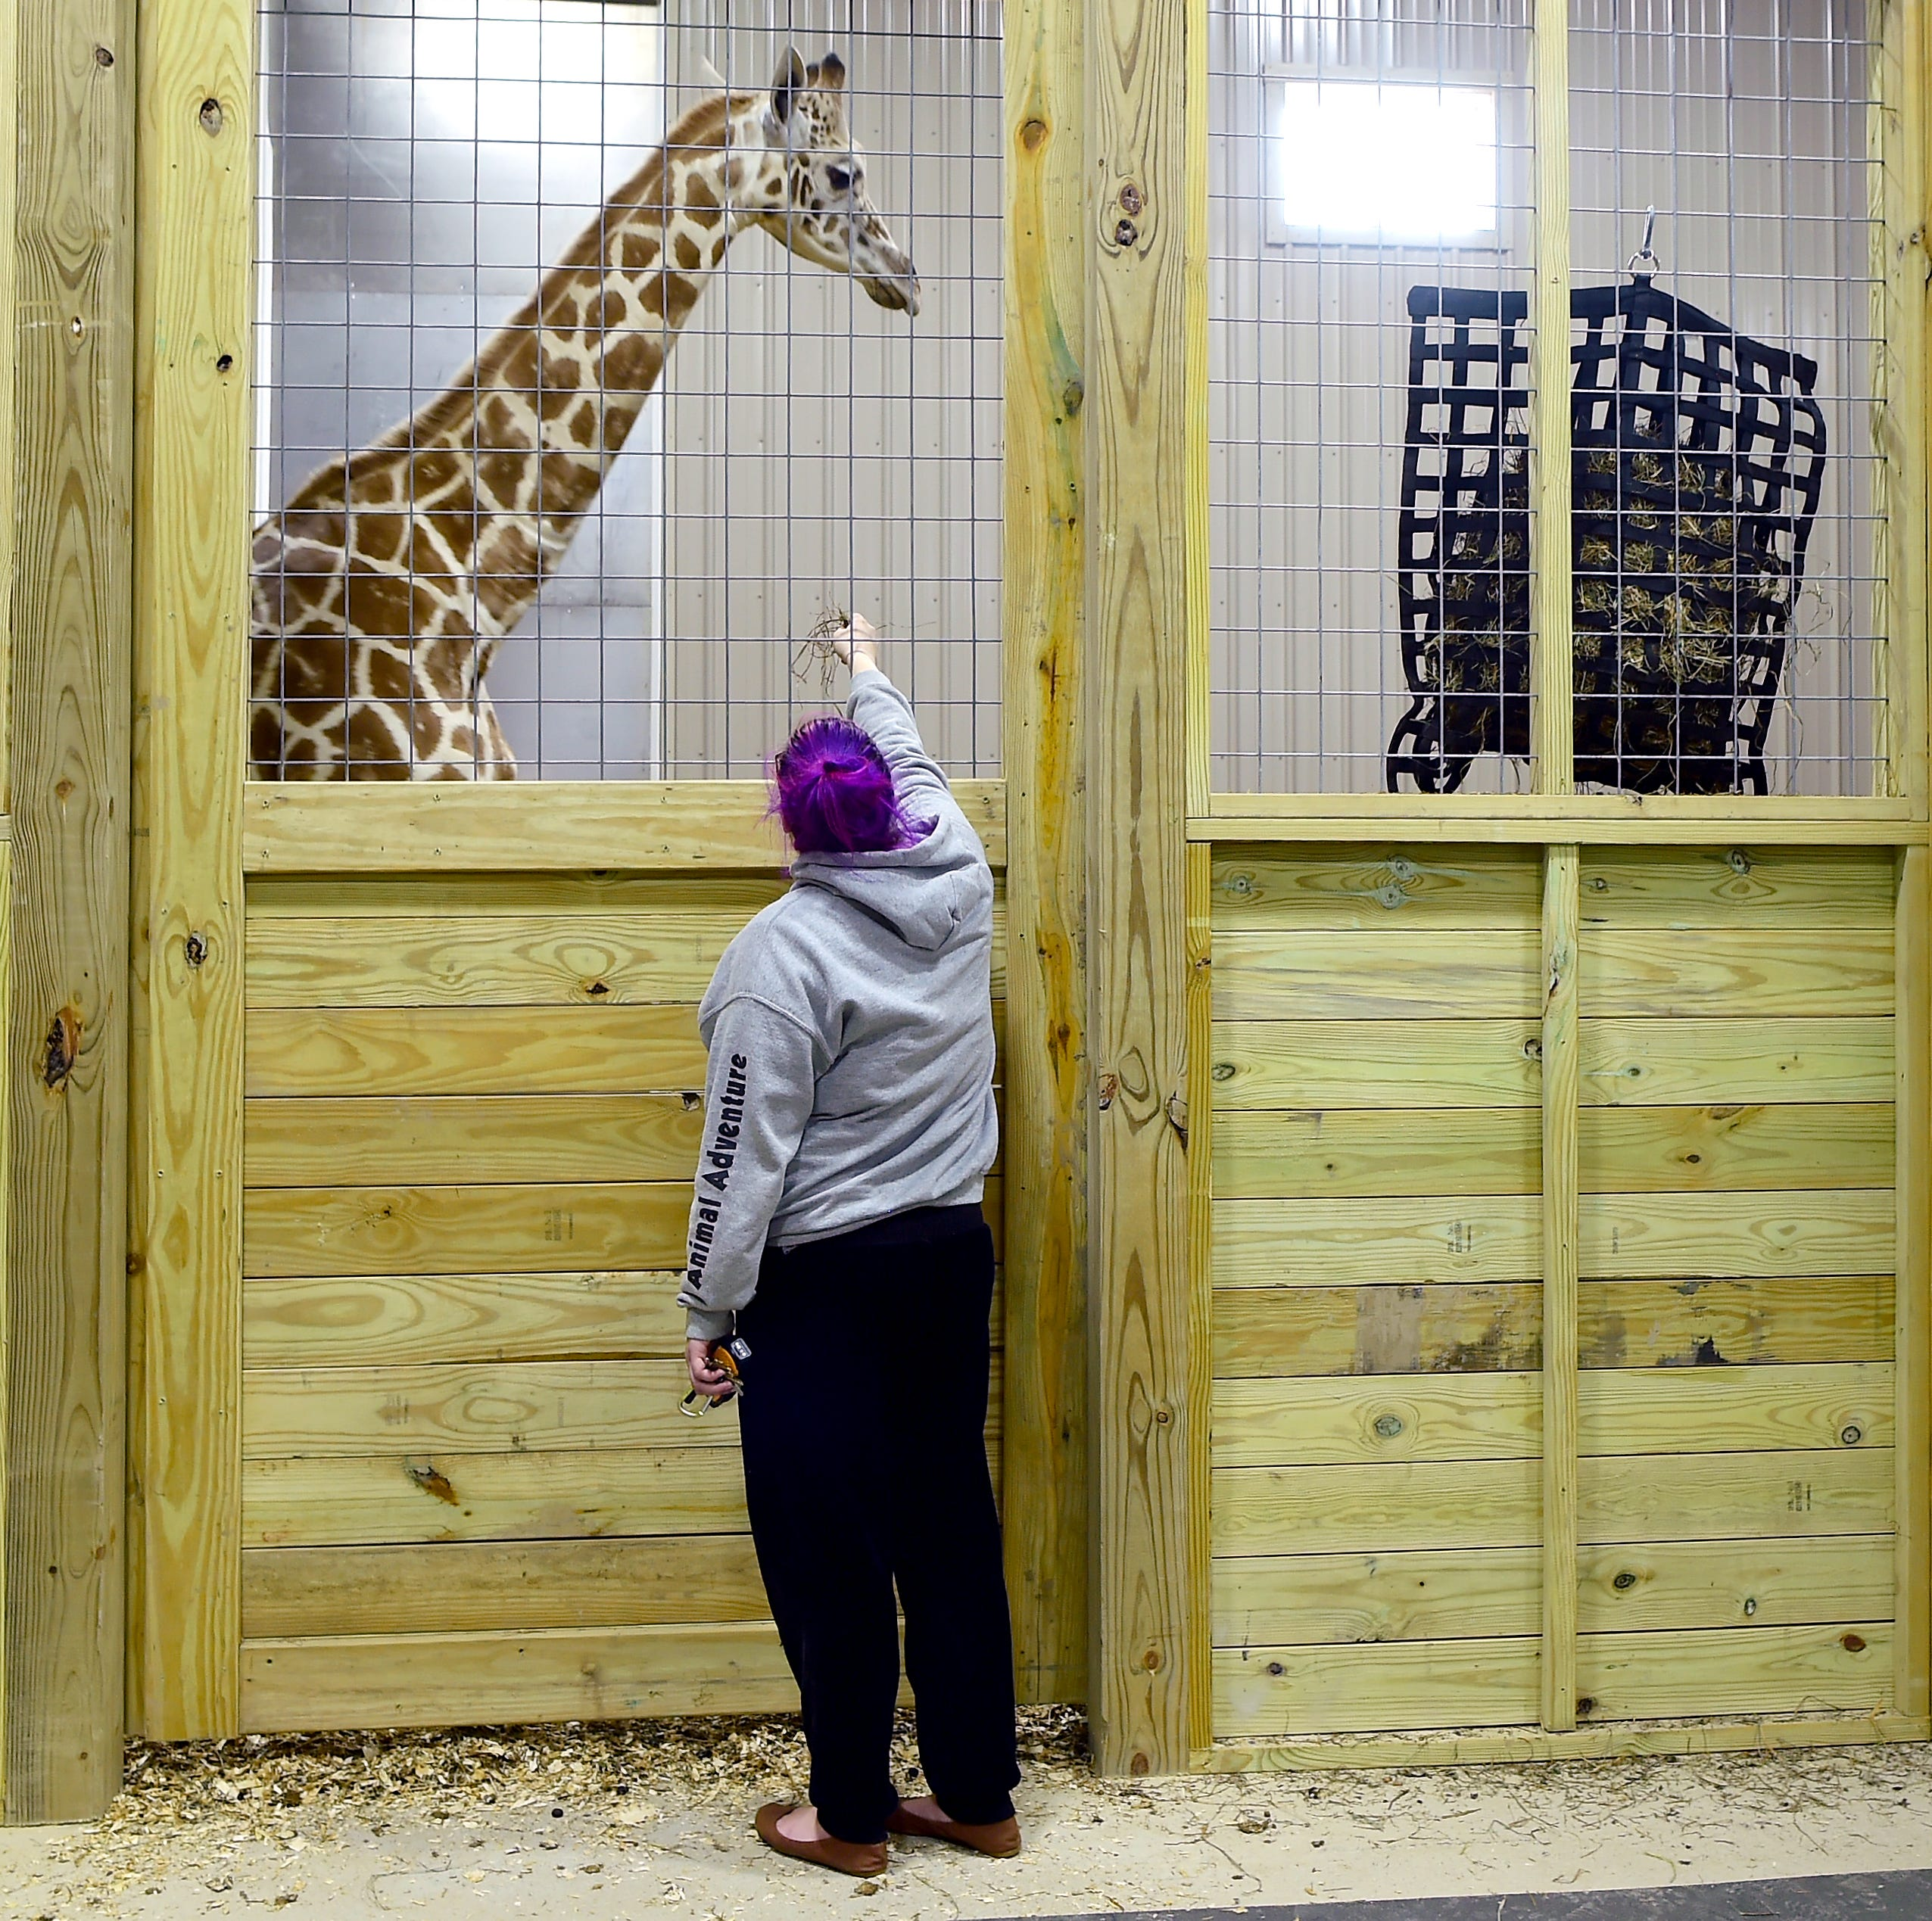 Animal Adventure Park moves Tajiri away from April the Giraffe, but not far